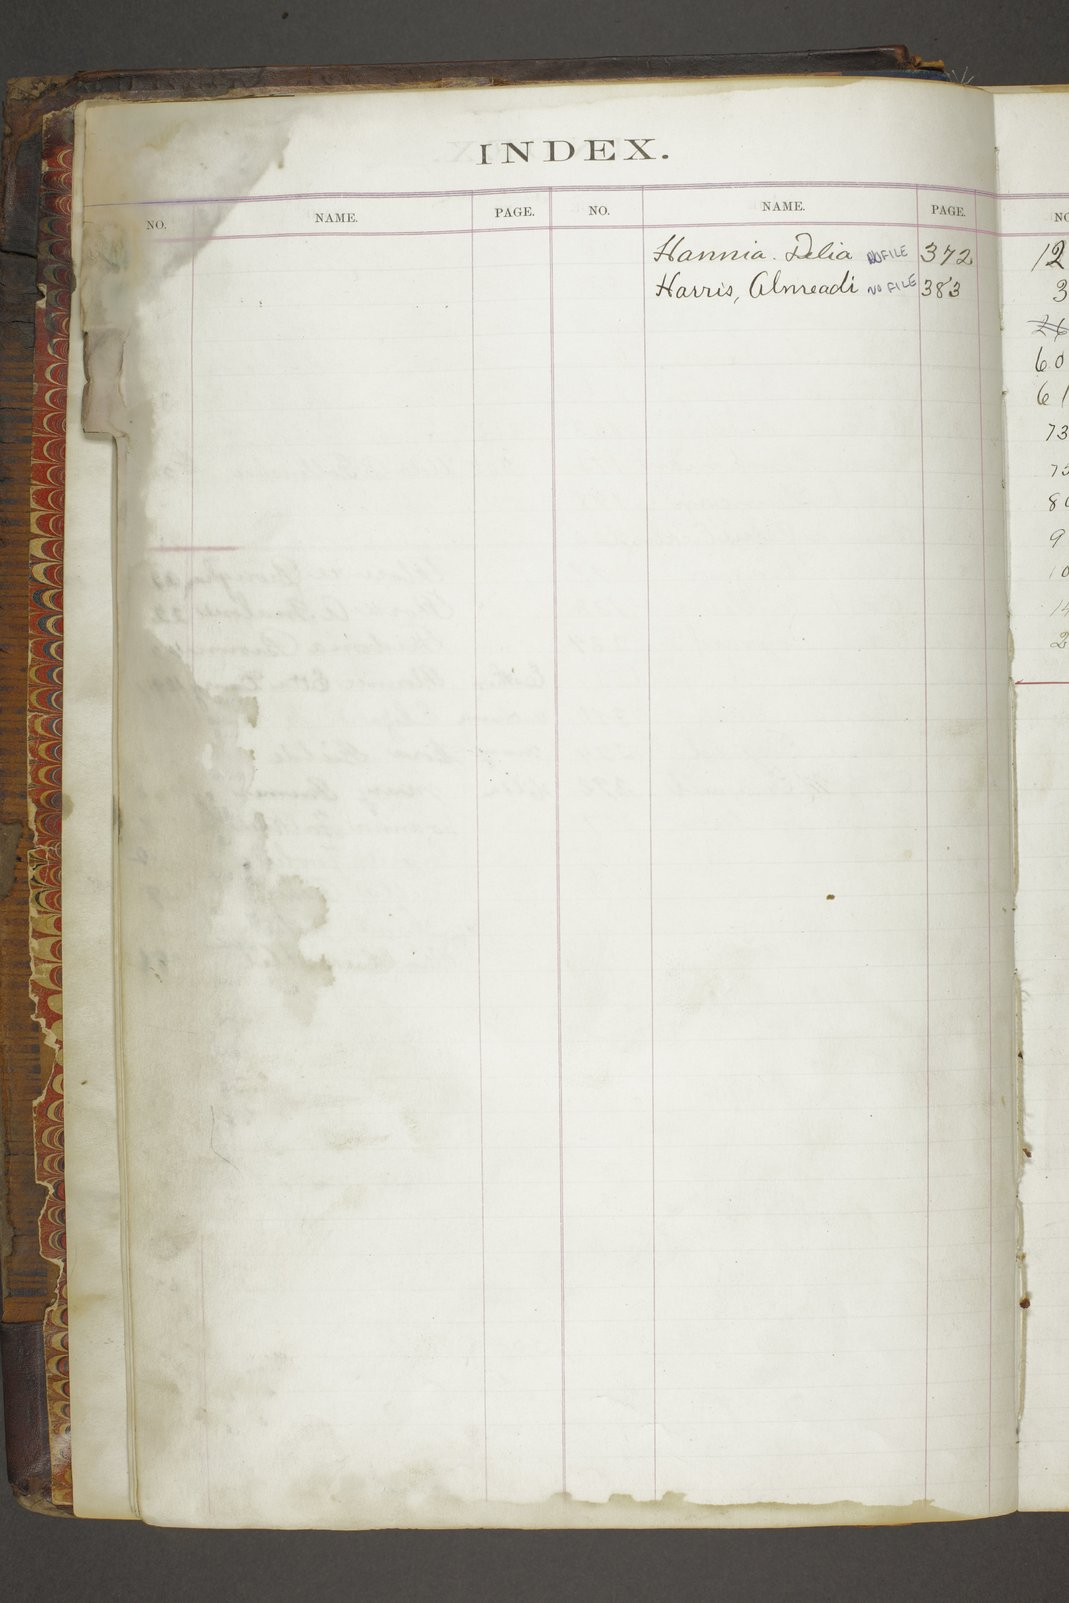 Personal histories of inmates - Volume I, Index E-F